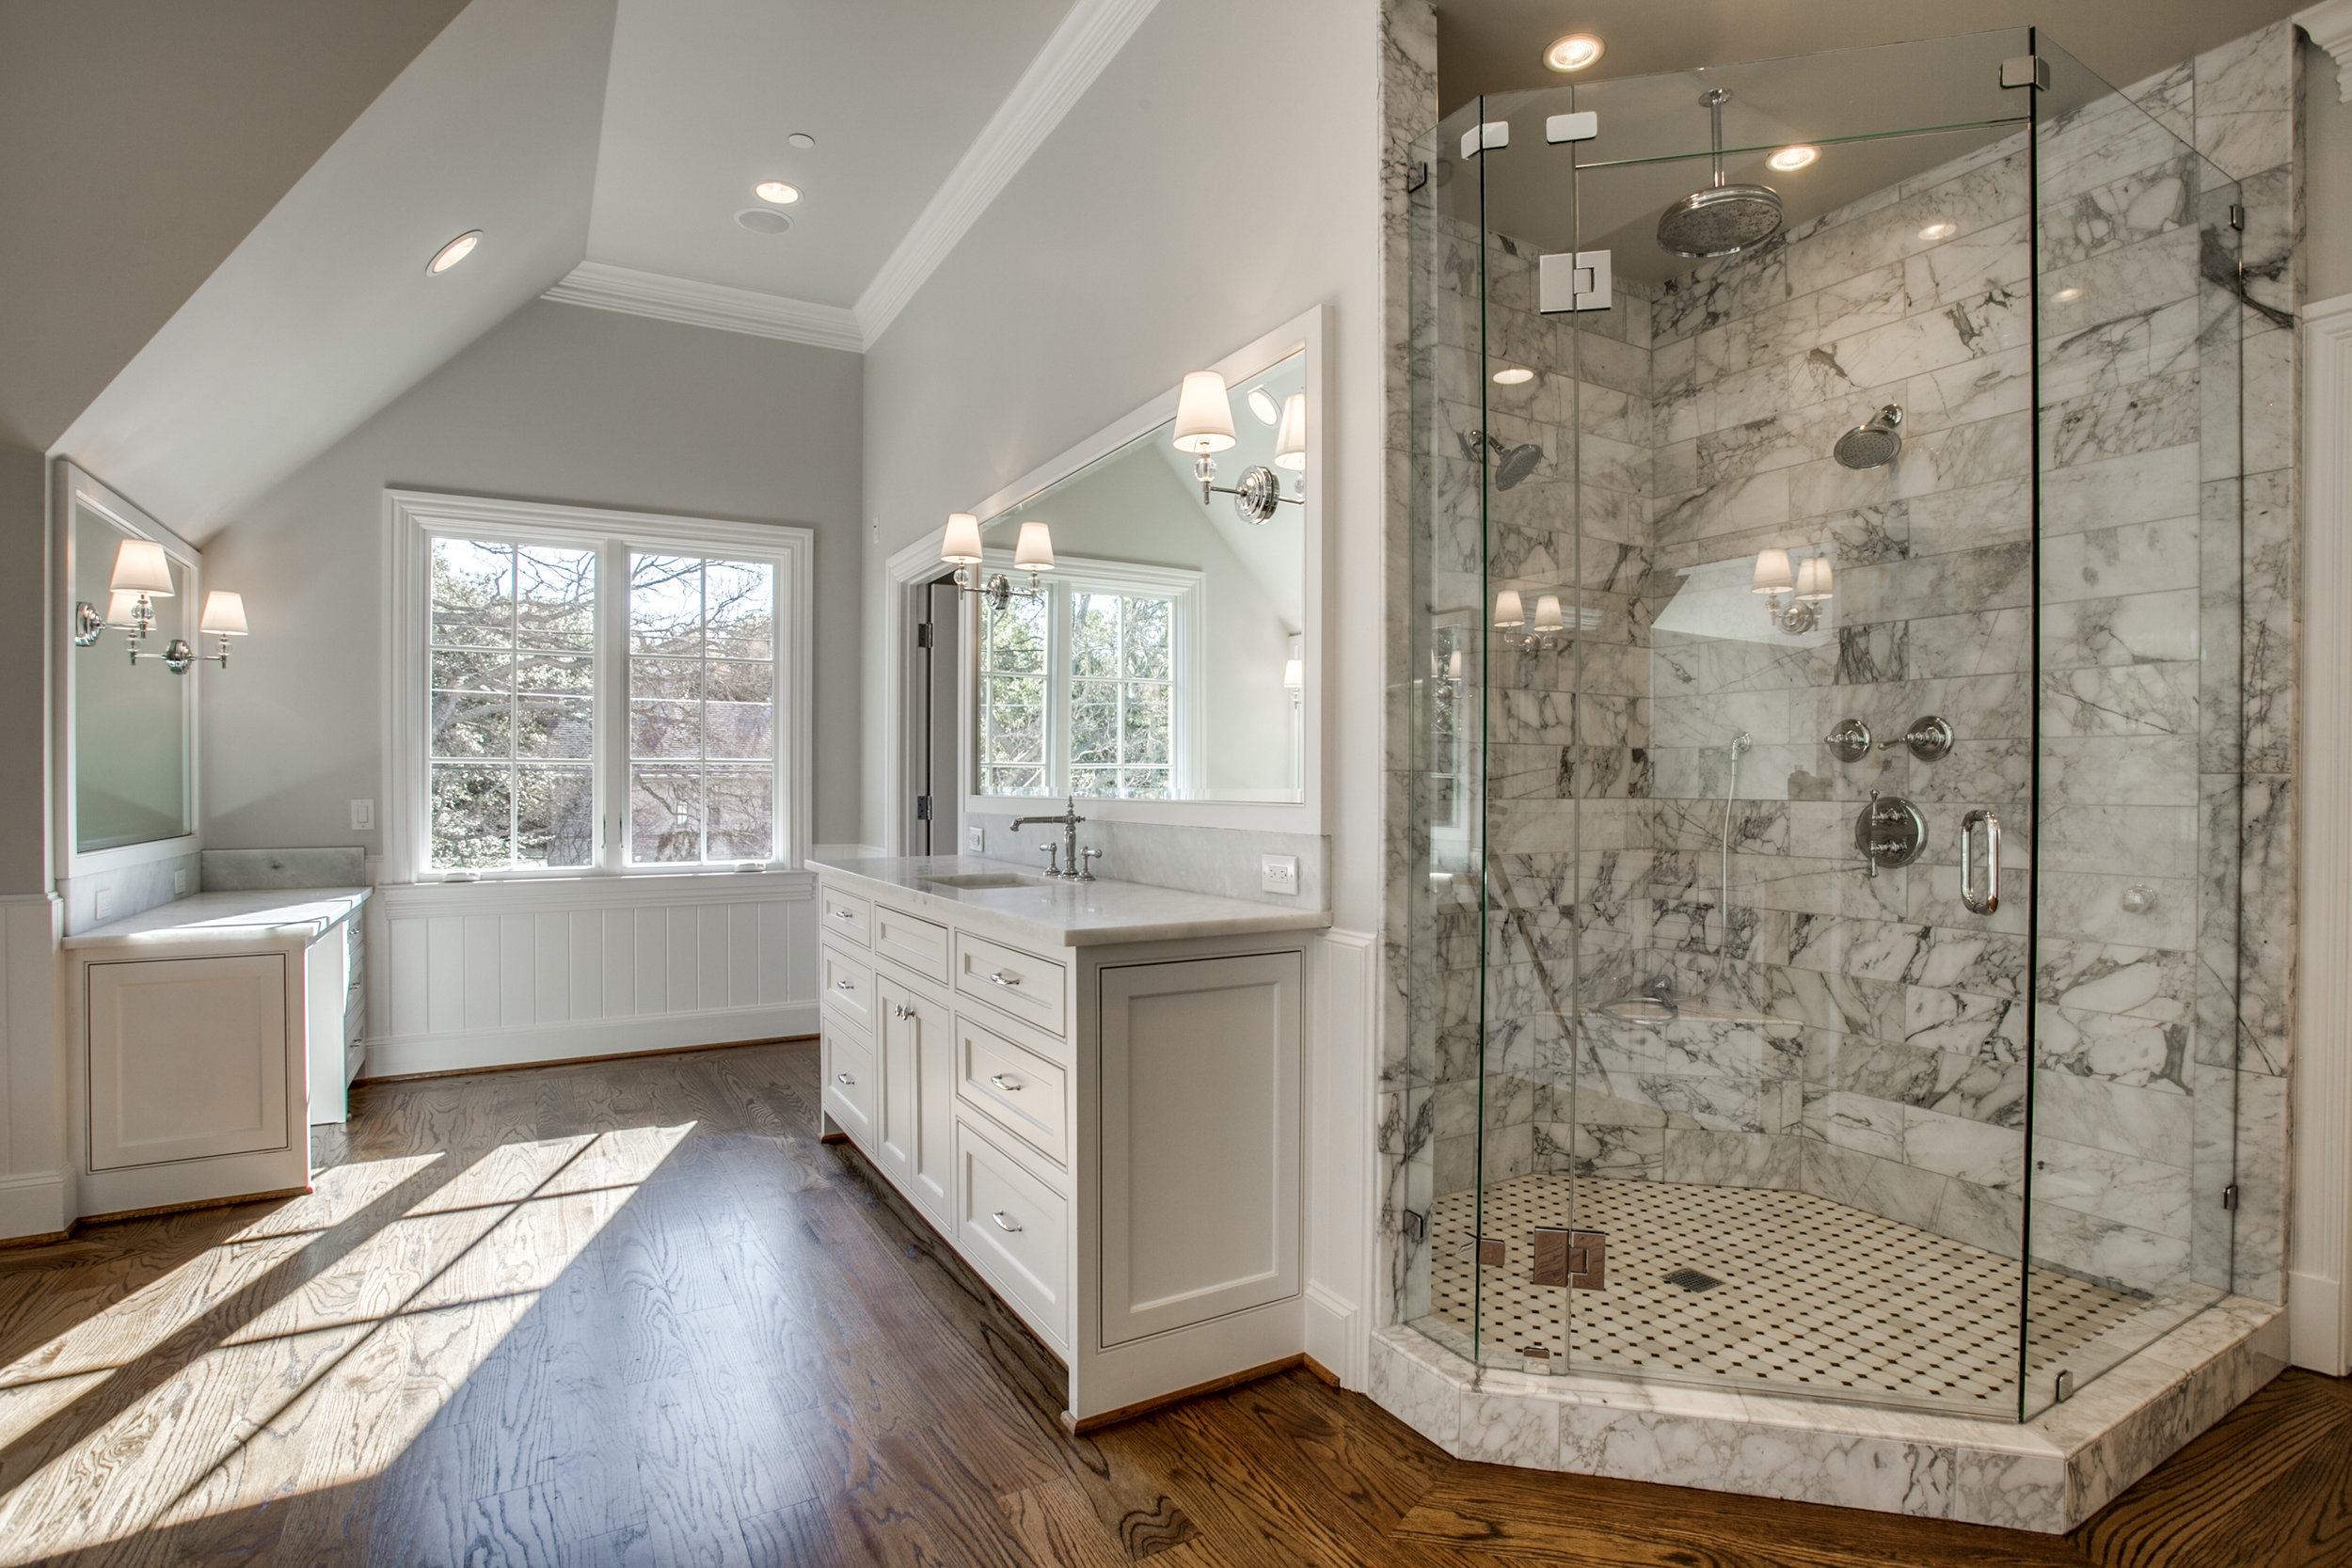 4401-larchmont-st-dallas-tx-High-Res-14.jpg